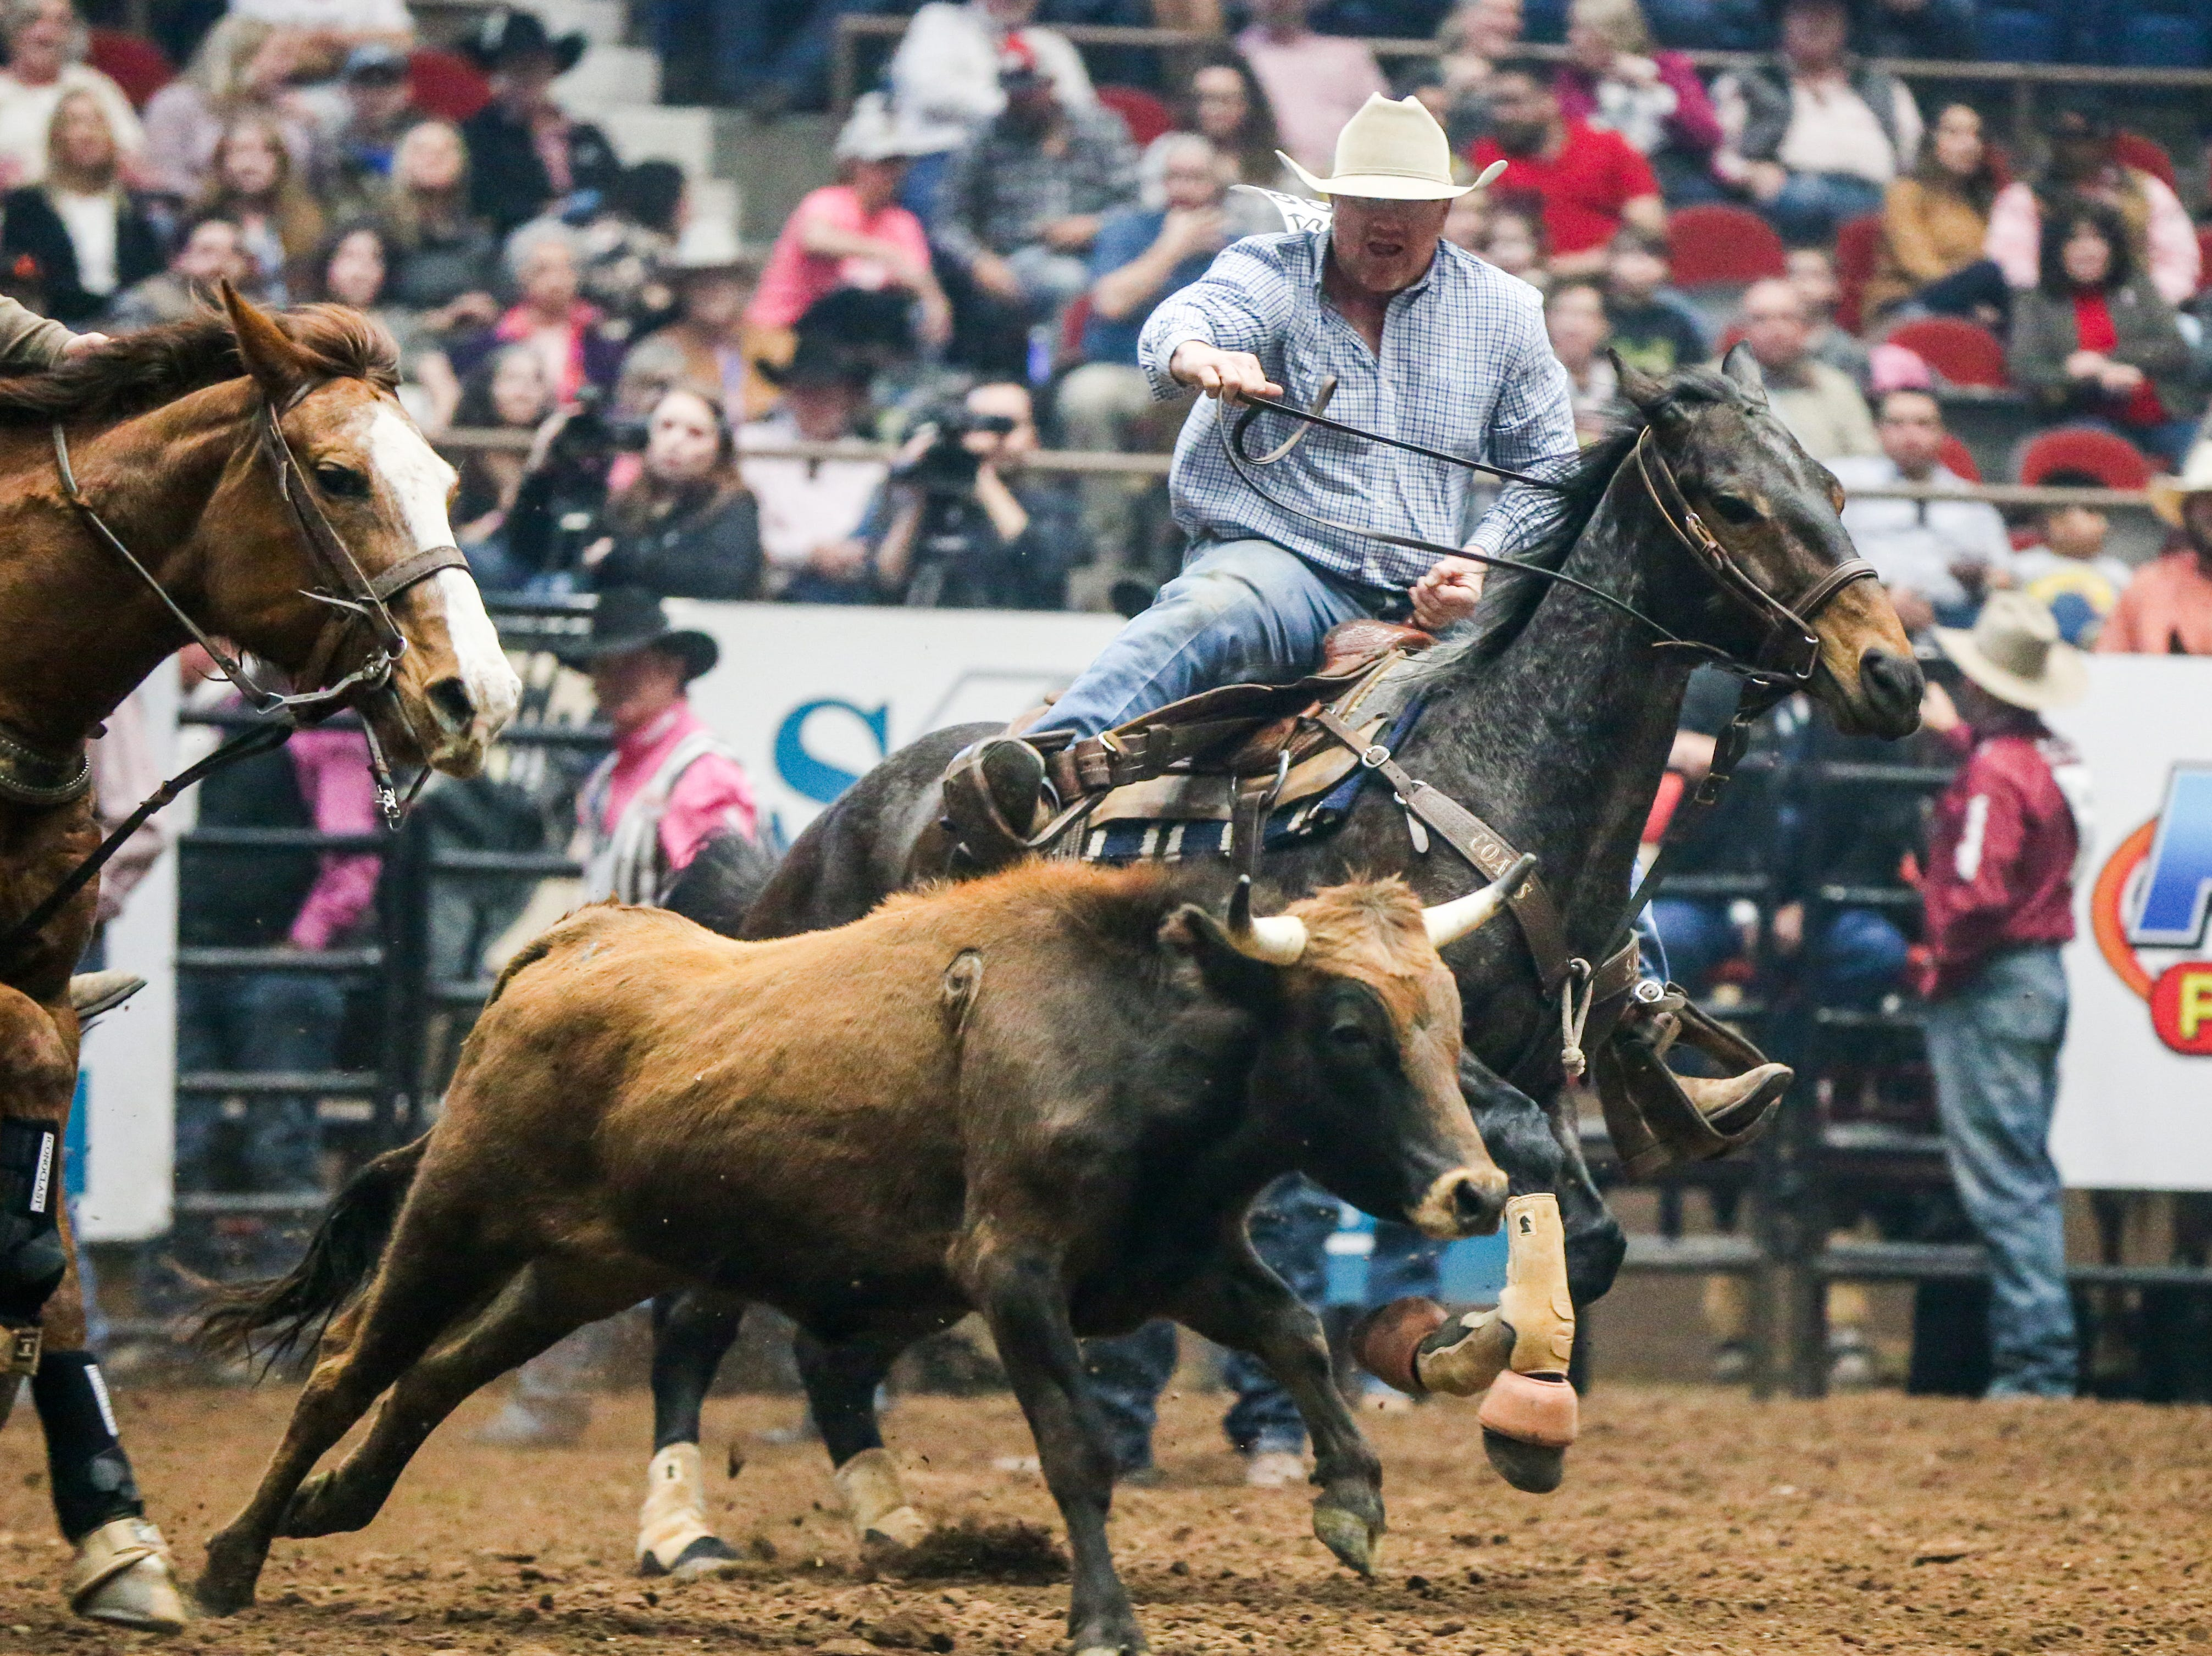 Stockton Graves rides out to steer wrestle during the San Angelo Stock Show & Rodeo performance Thursday, Feb. 14, 2019, at Foster Communications Coliseum.